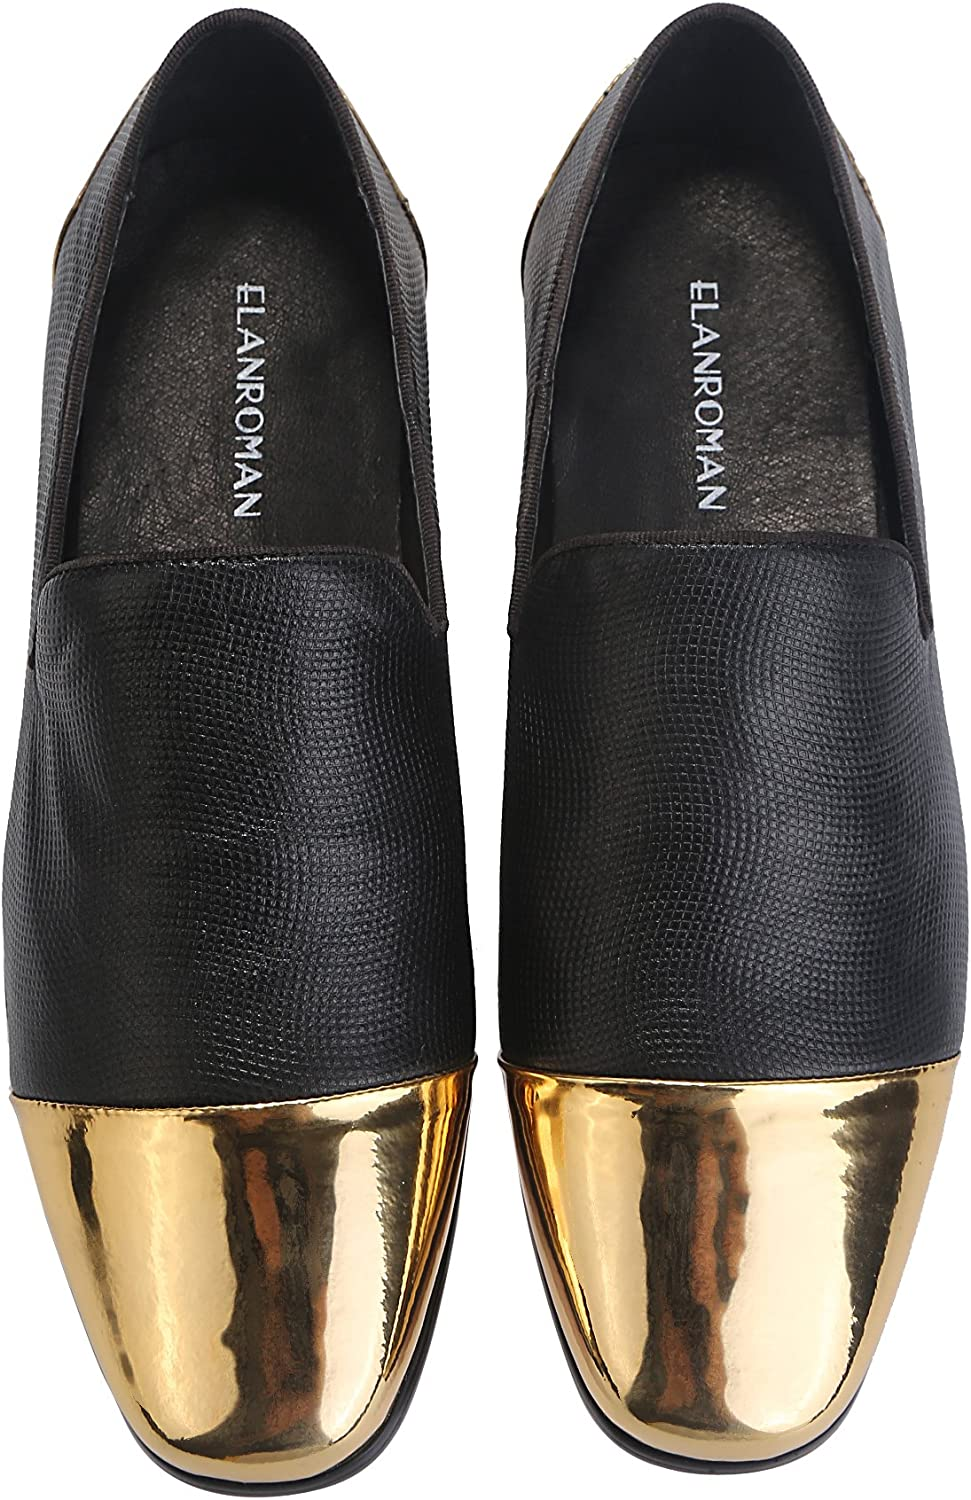 ELANROMAN MEN Dress Loafers läder skor Italian Lyxy mode mode mode Classic skor guld Toe Dress for herr Casual Loafer svart  välj från de senaste varumärkena som